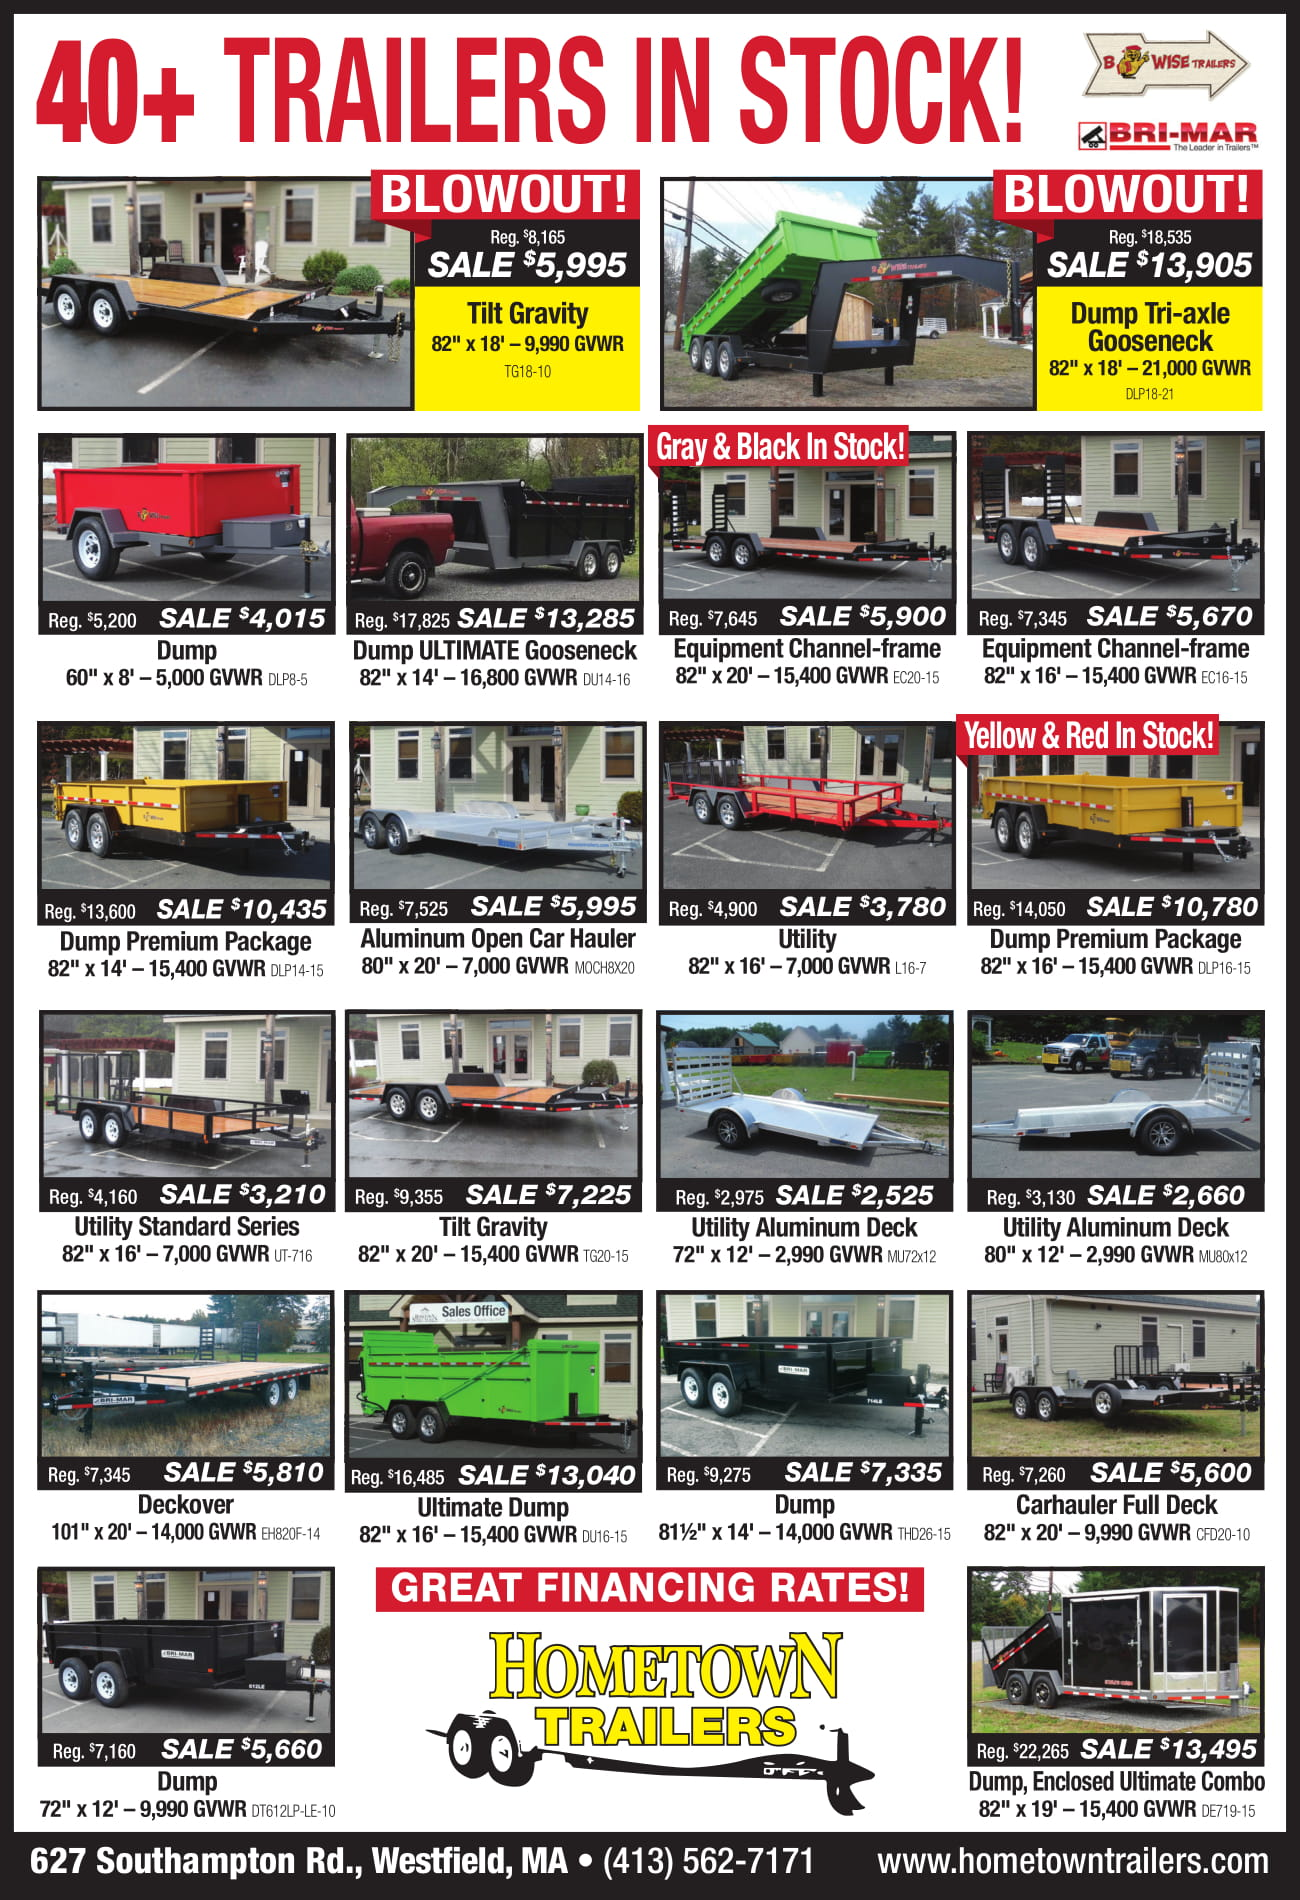 Hometown Trailers ad January 2019